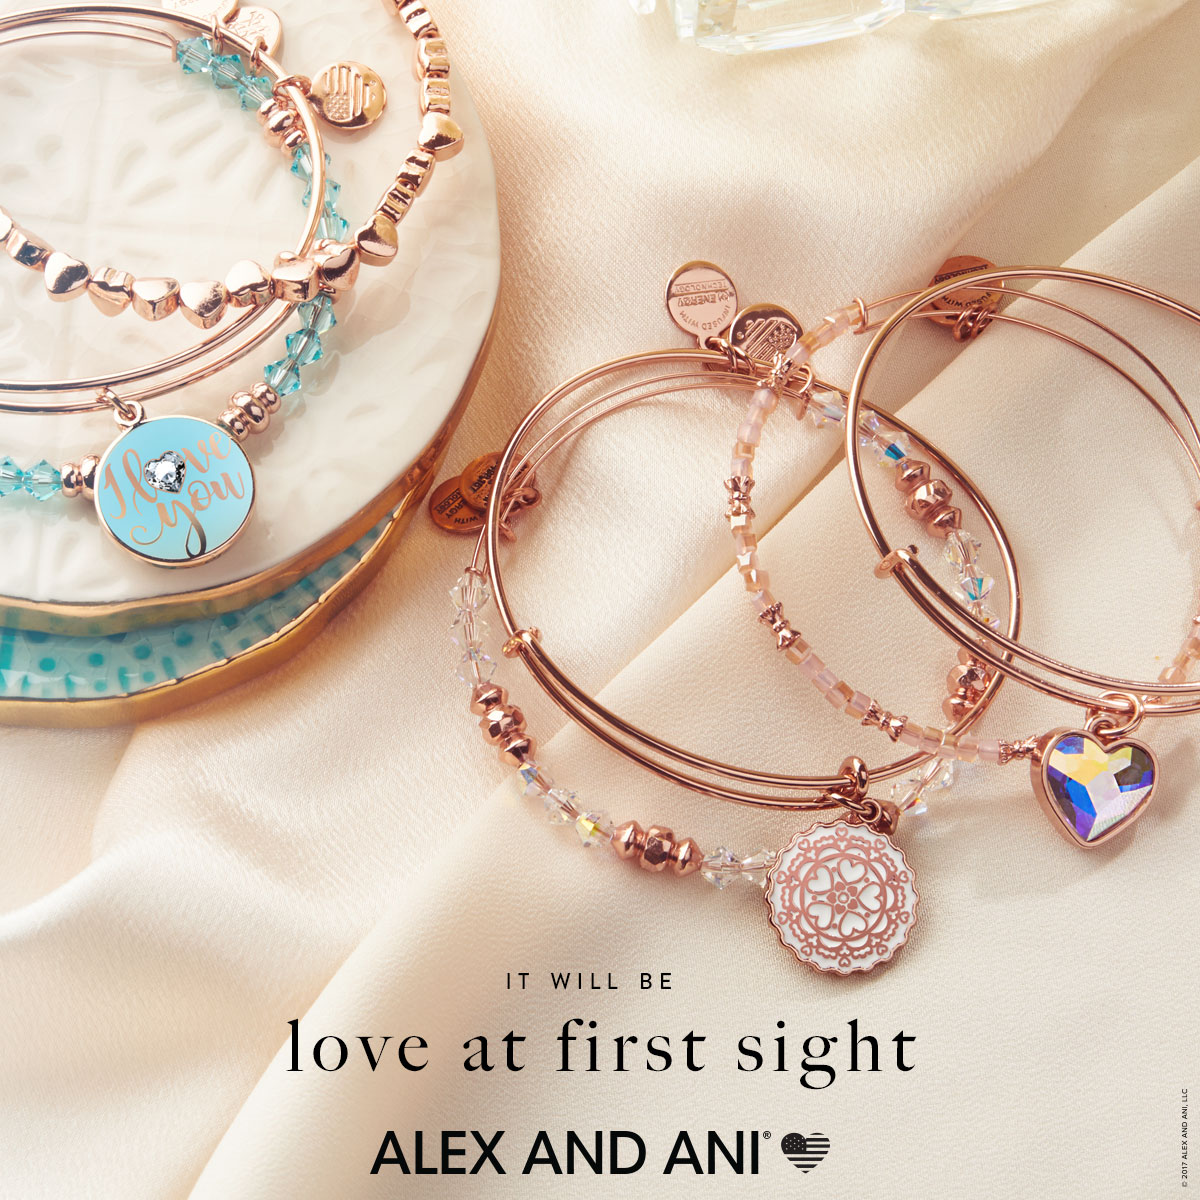 alex and ani valentine